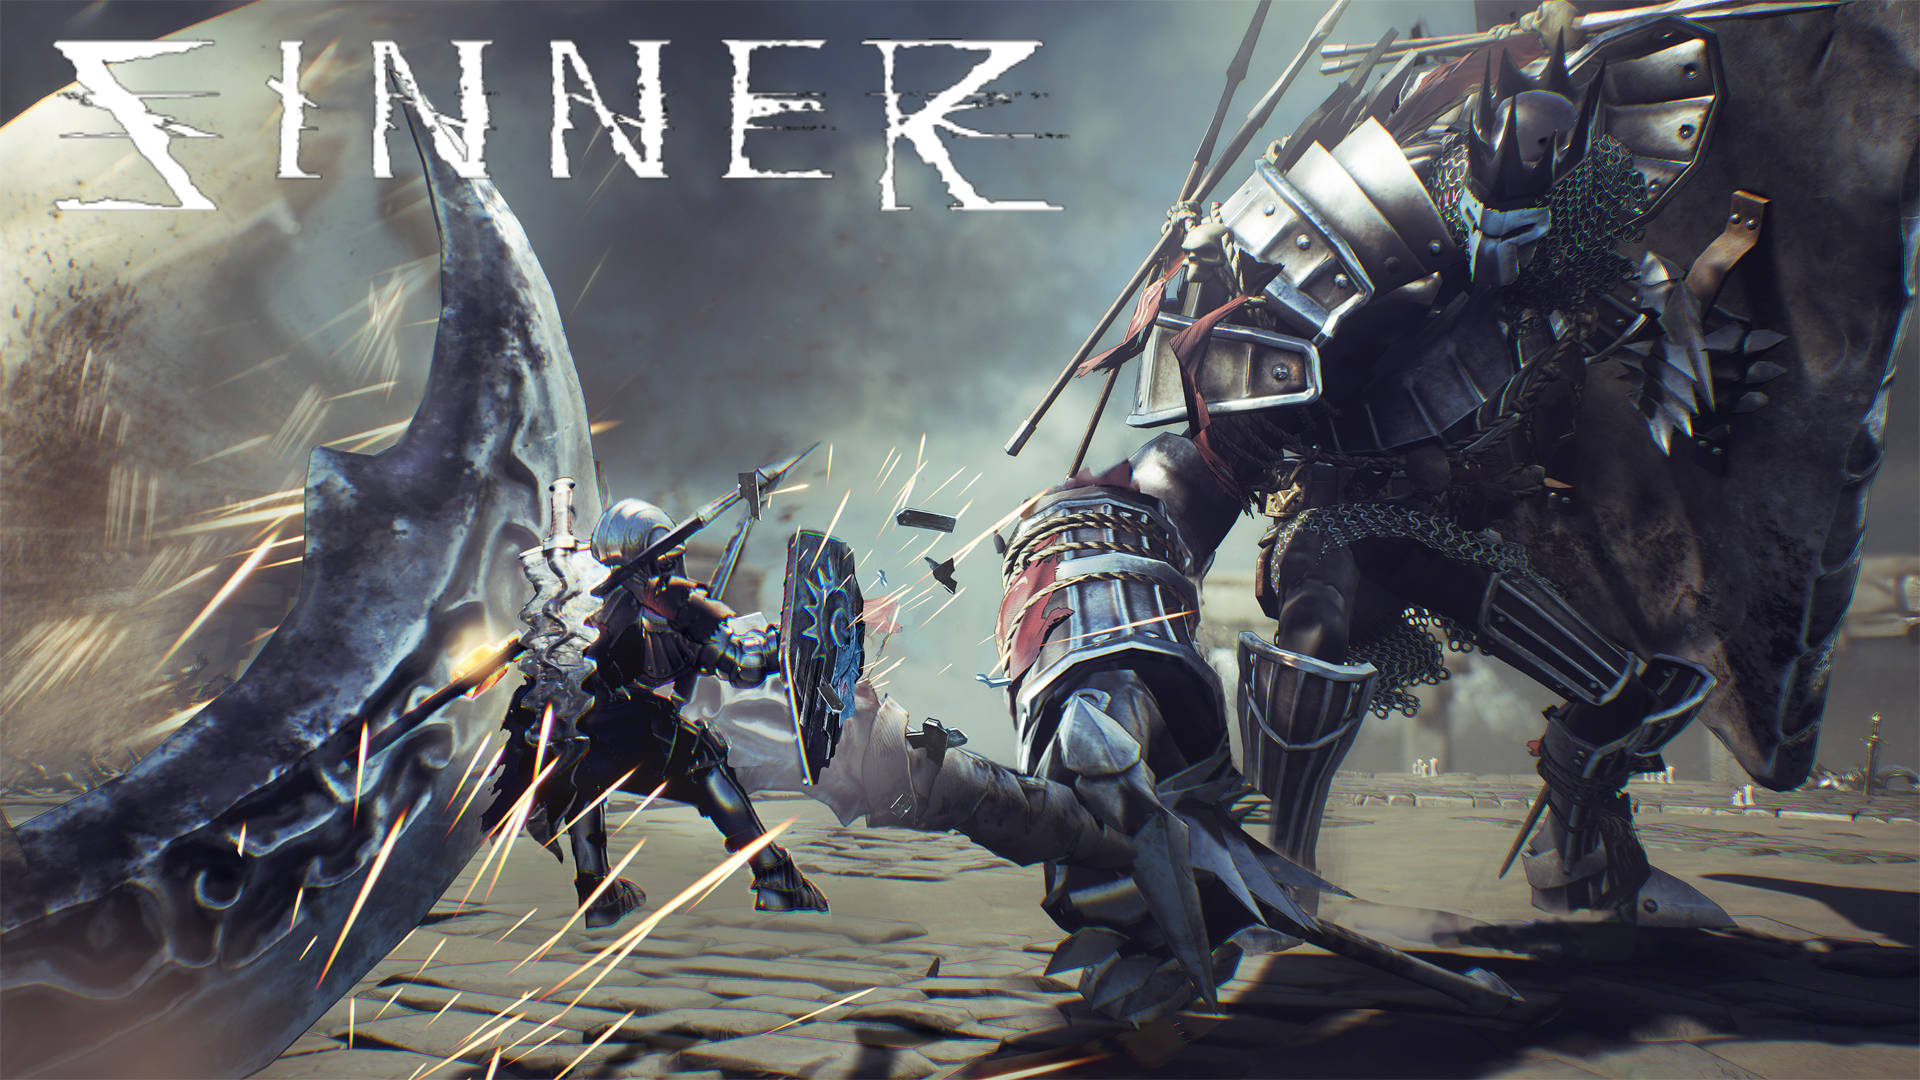 'Souls' Inspired Action Game, Sinner: Sacrifice For Redemption, Slashes Its Way Onto Consoles/PC Later This Year